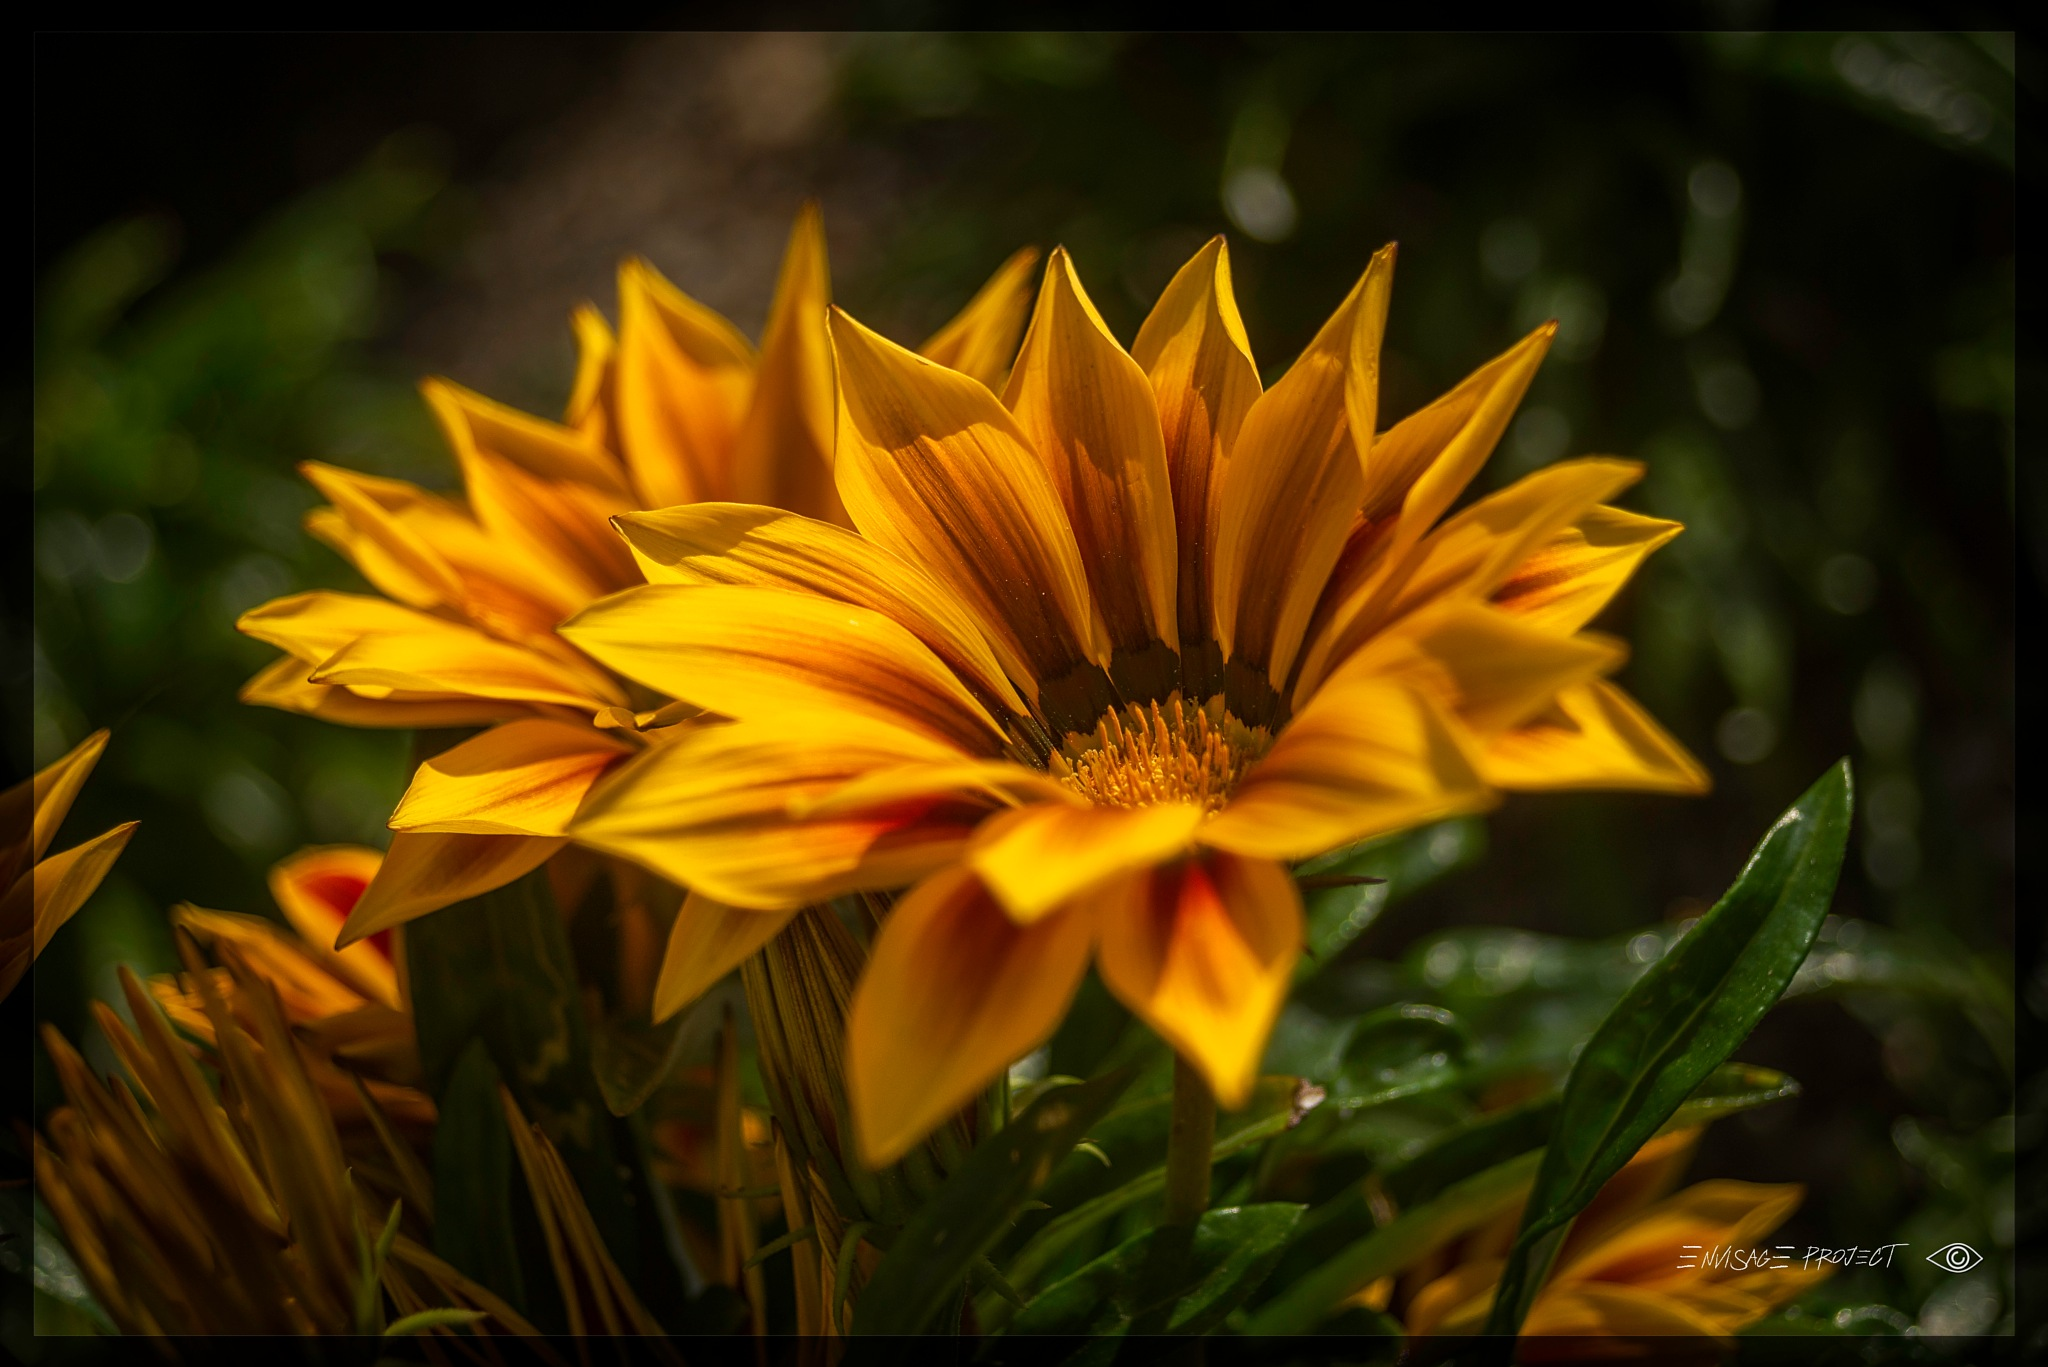 Siunflower by Paul Young